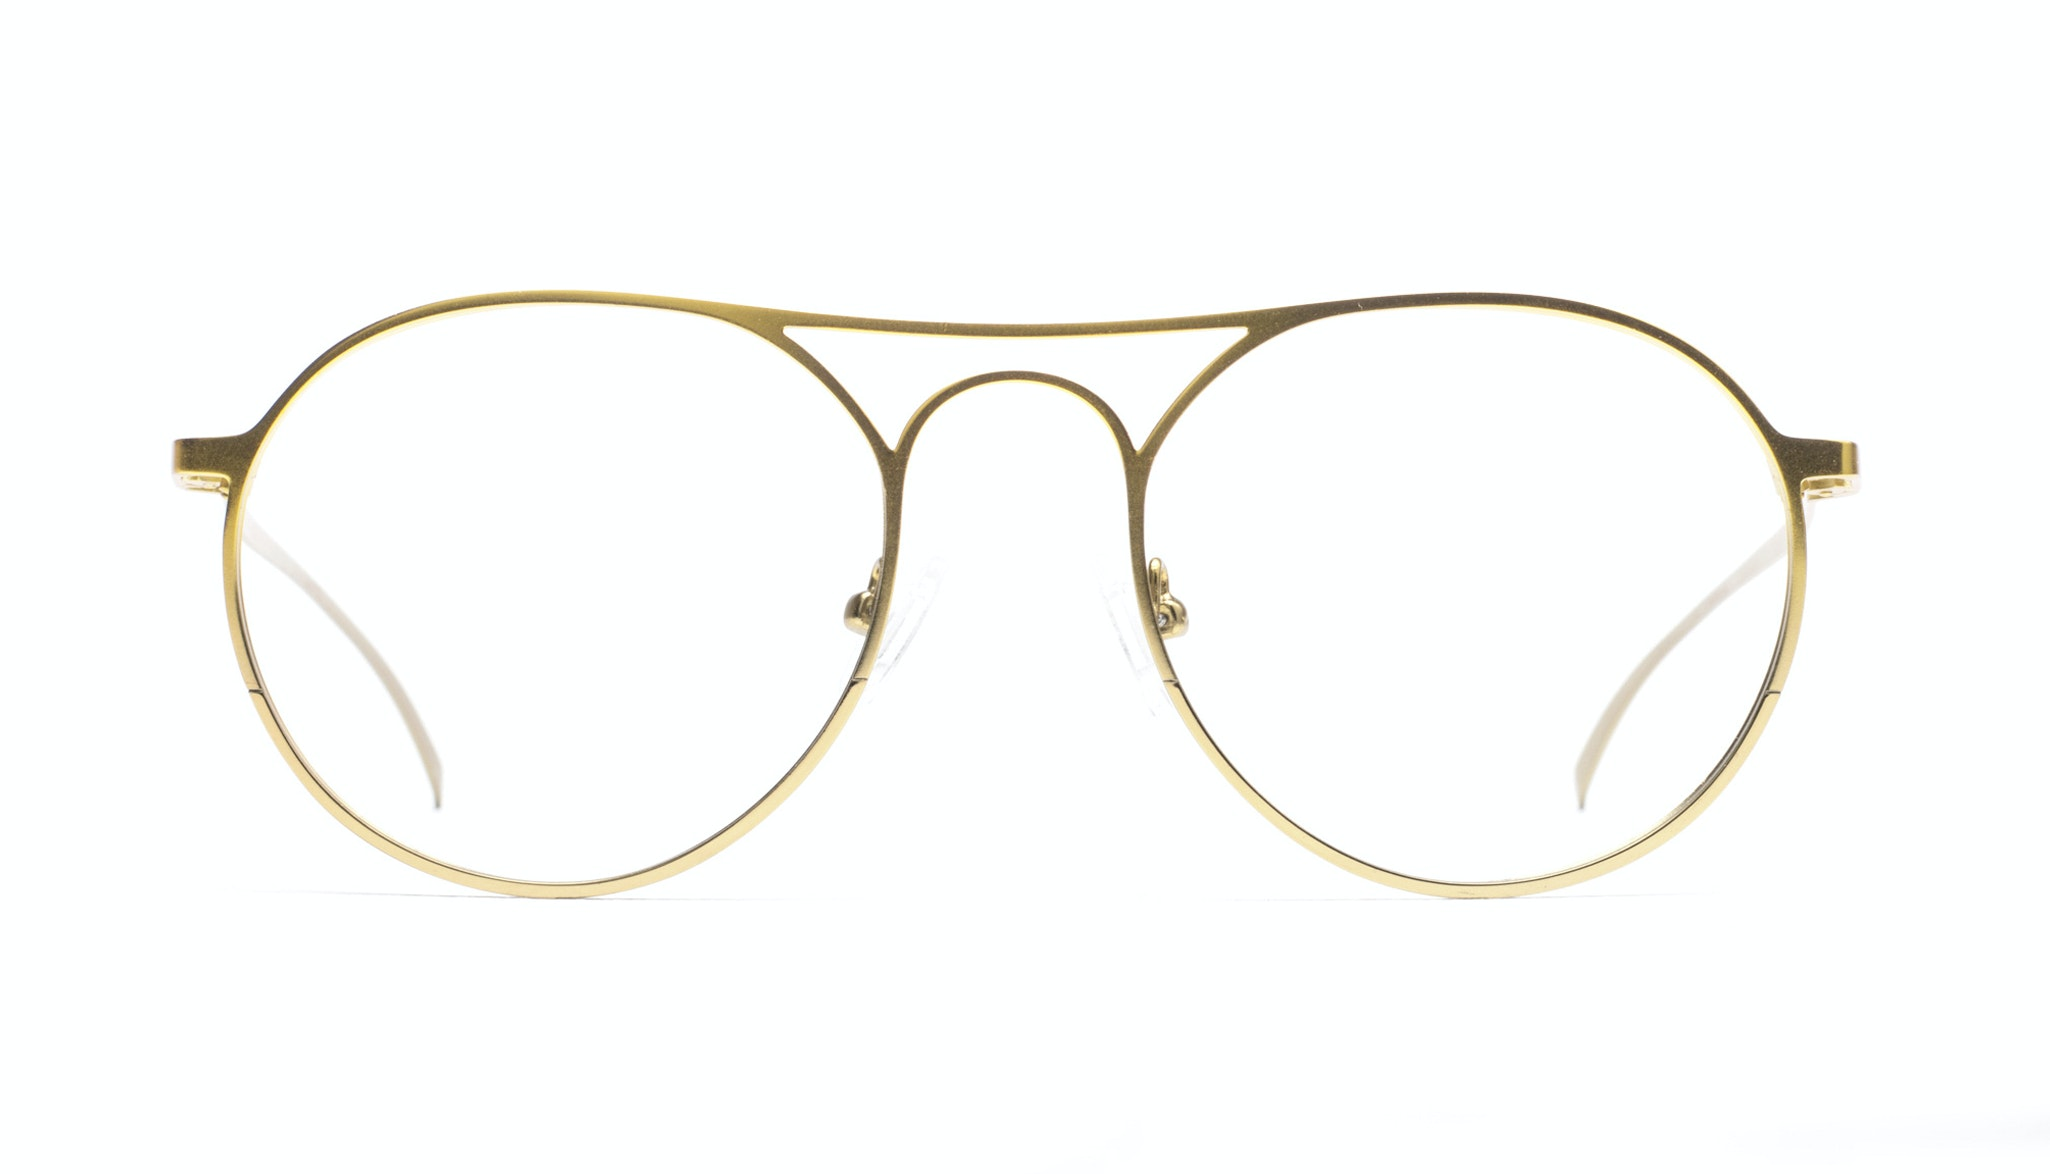 Affordable Fashion Glasses Aviator Round Eyeglasses Men Contour Gold